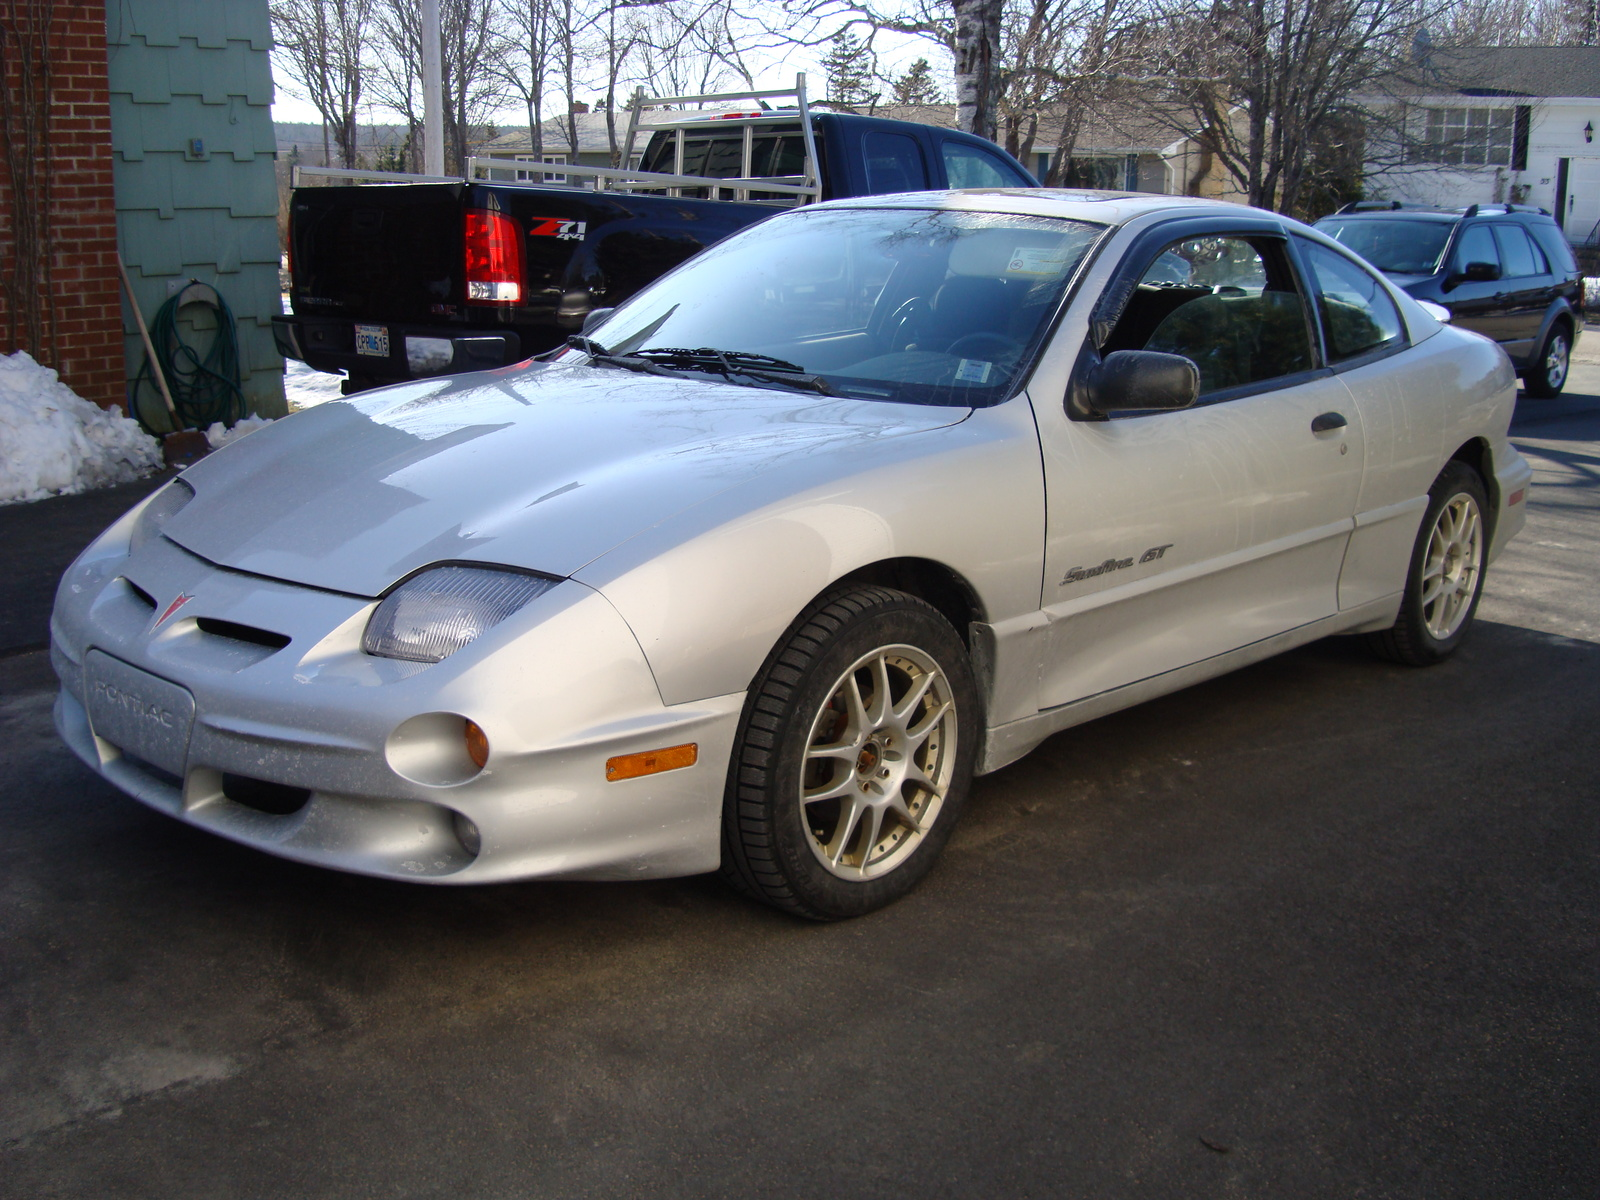 2000 pontiac sunfire pictures cargurus. Black Bedroom Furniture Sets. Home Design Ideas